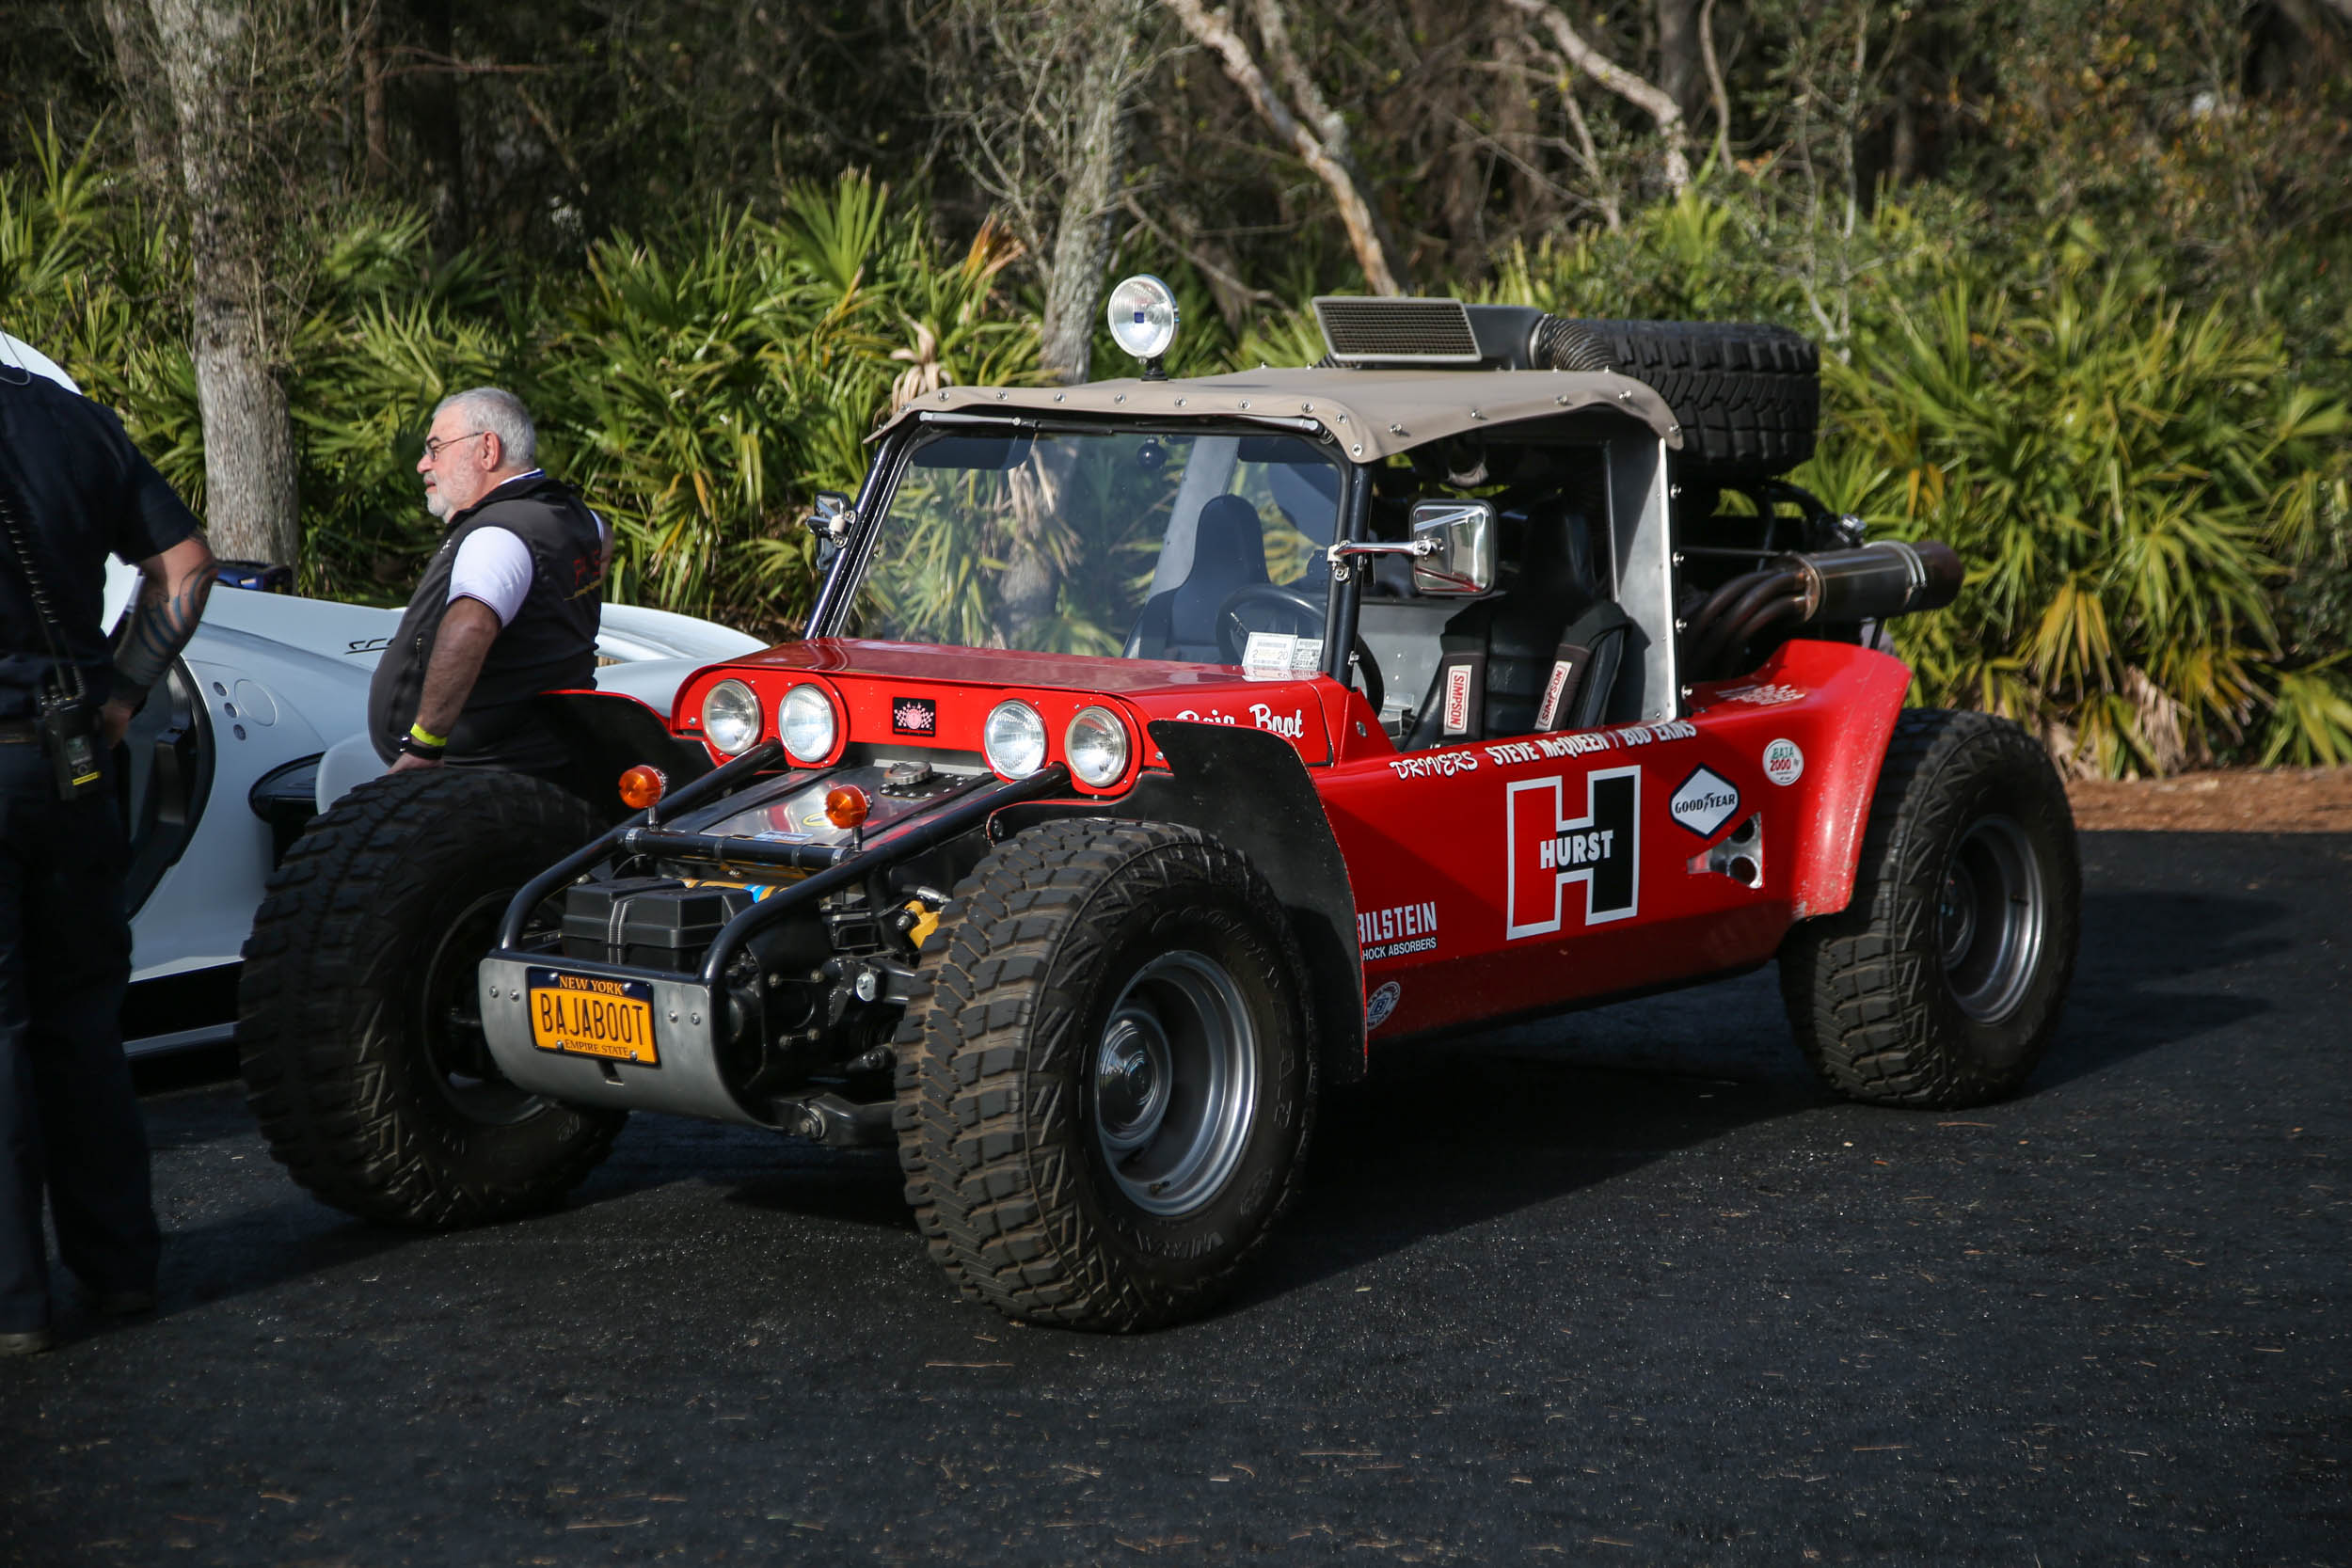 Steve McQueen and Bud Ekins raced the Baja Boot in the 1969 Mexican 1000, where transmission trouble ultimately ended their run. Ekins ran it in the Baja 500 later that year and won. As shown here, it has since been restored to its original 1967 look.